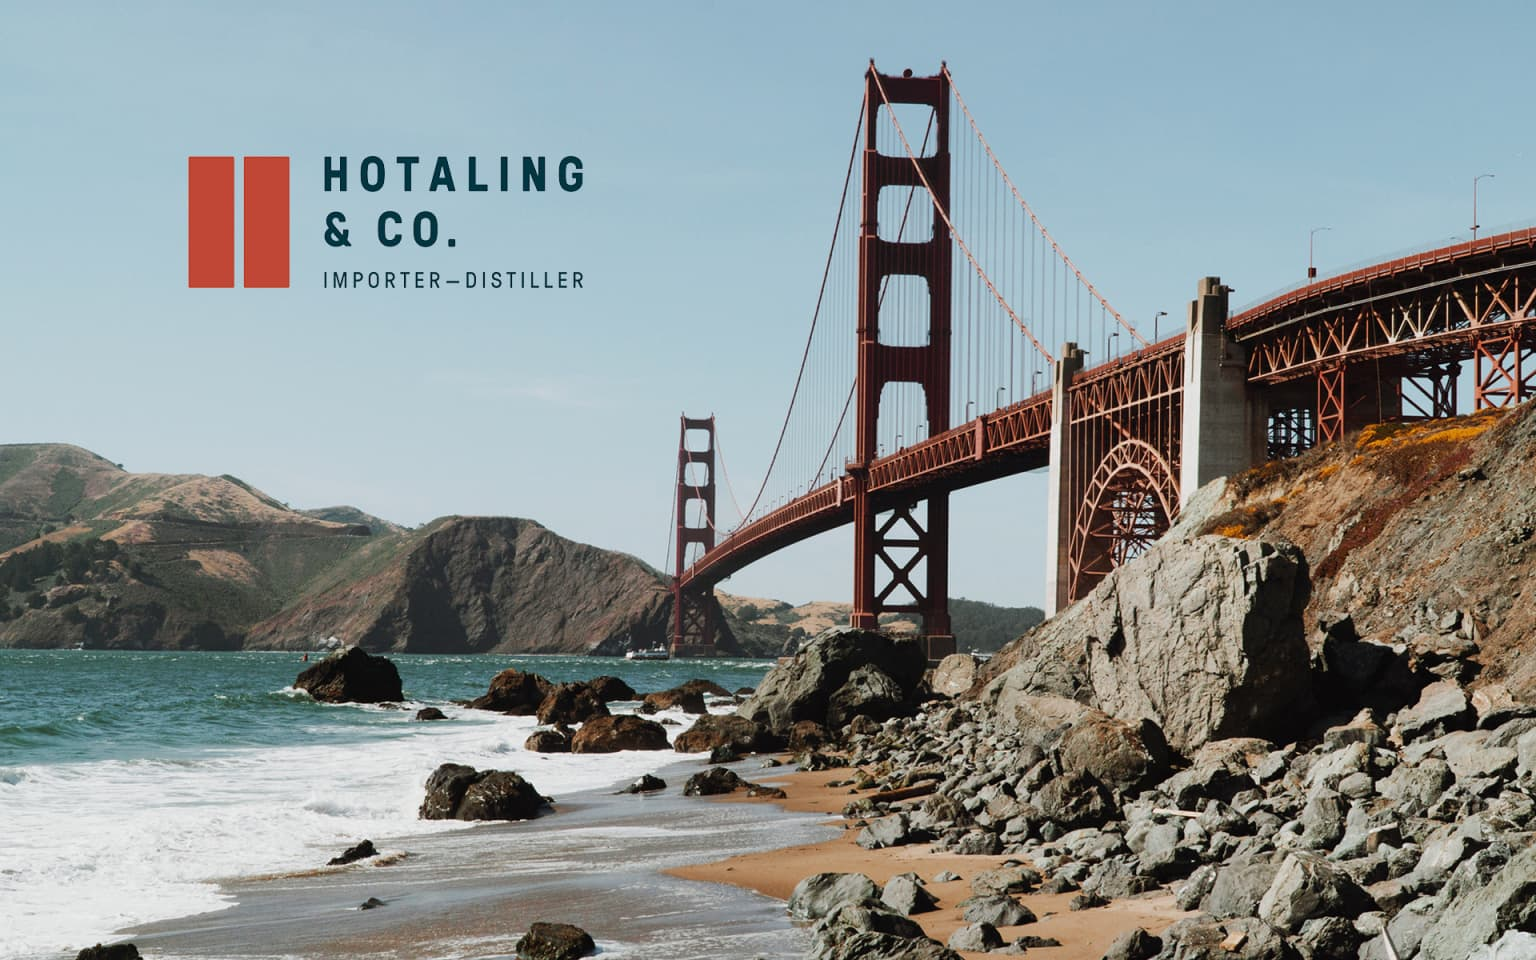 Hotaling and Co.